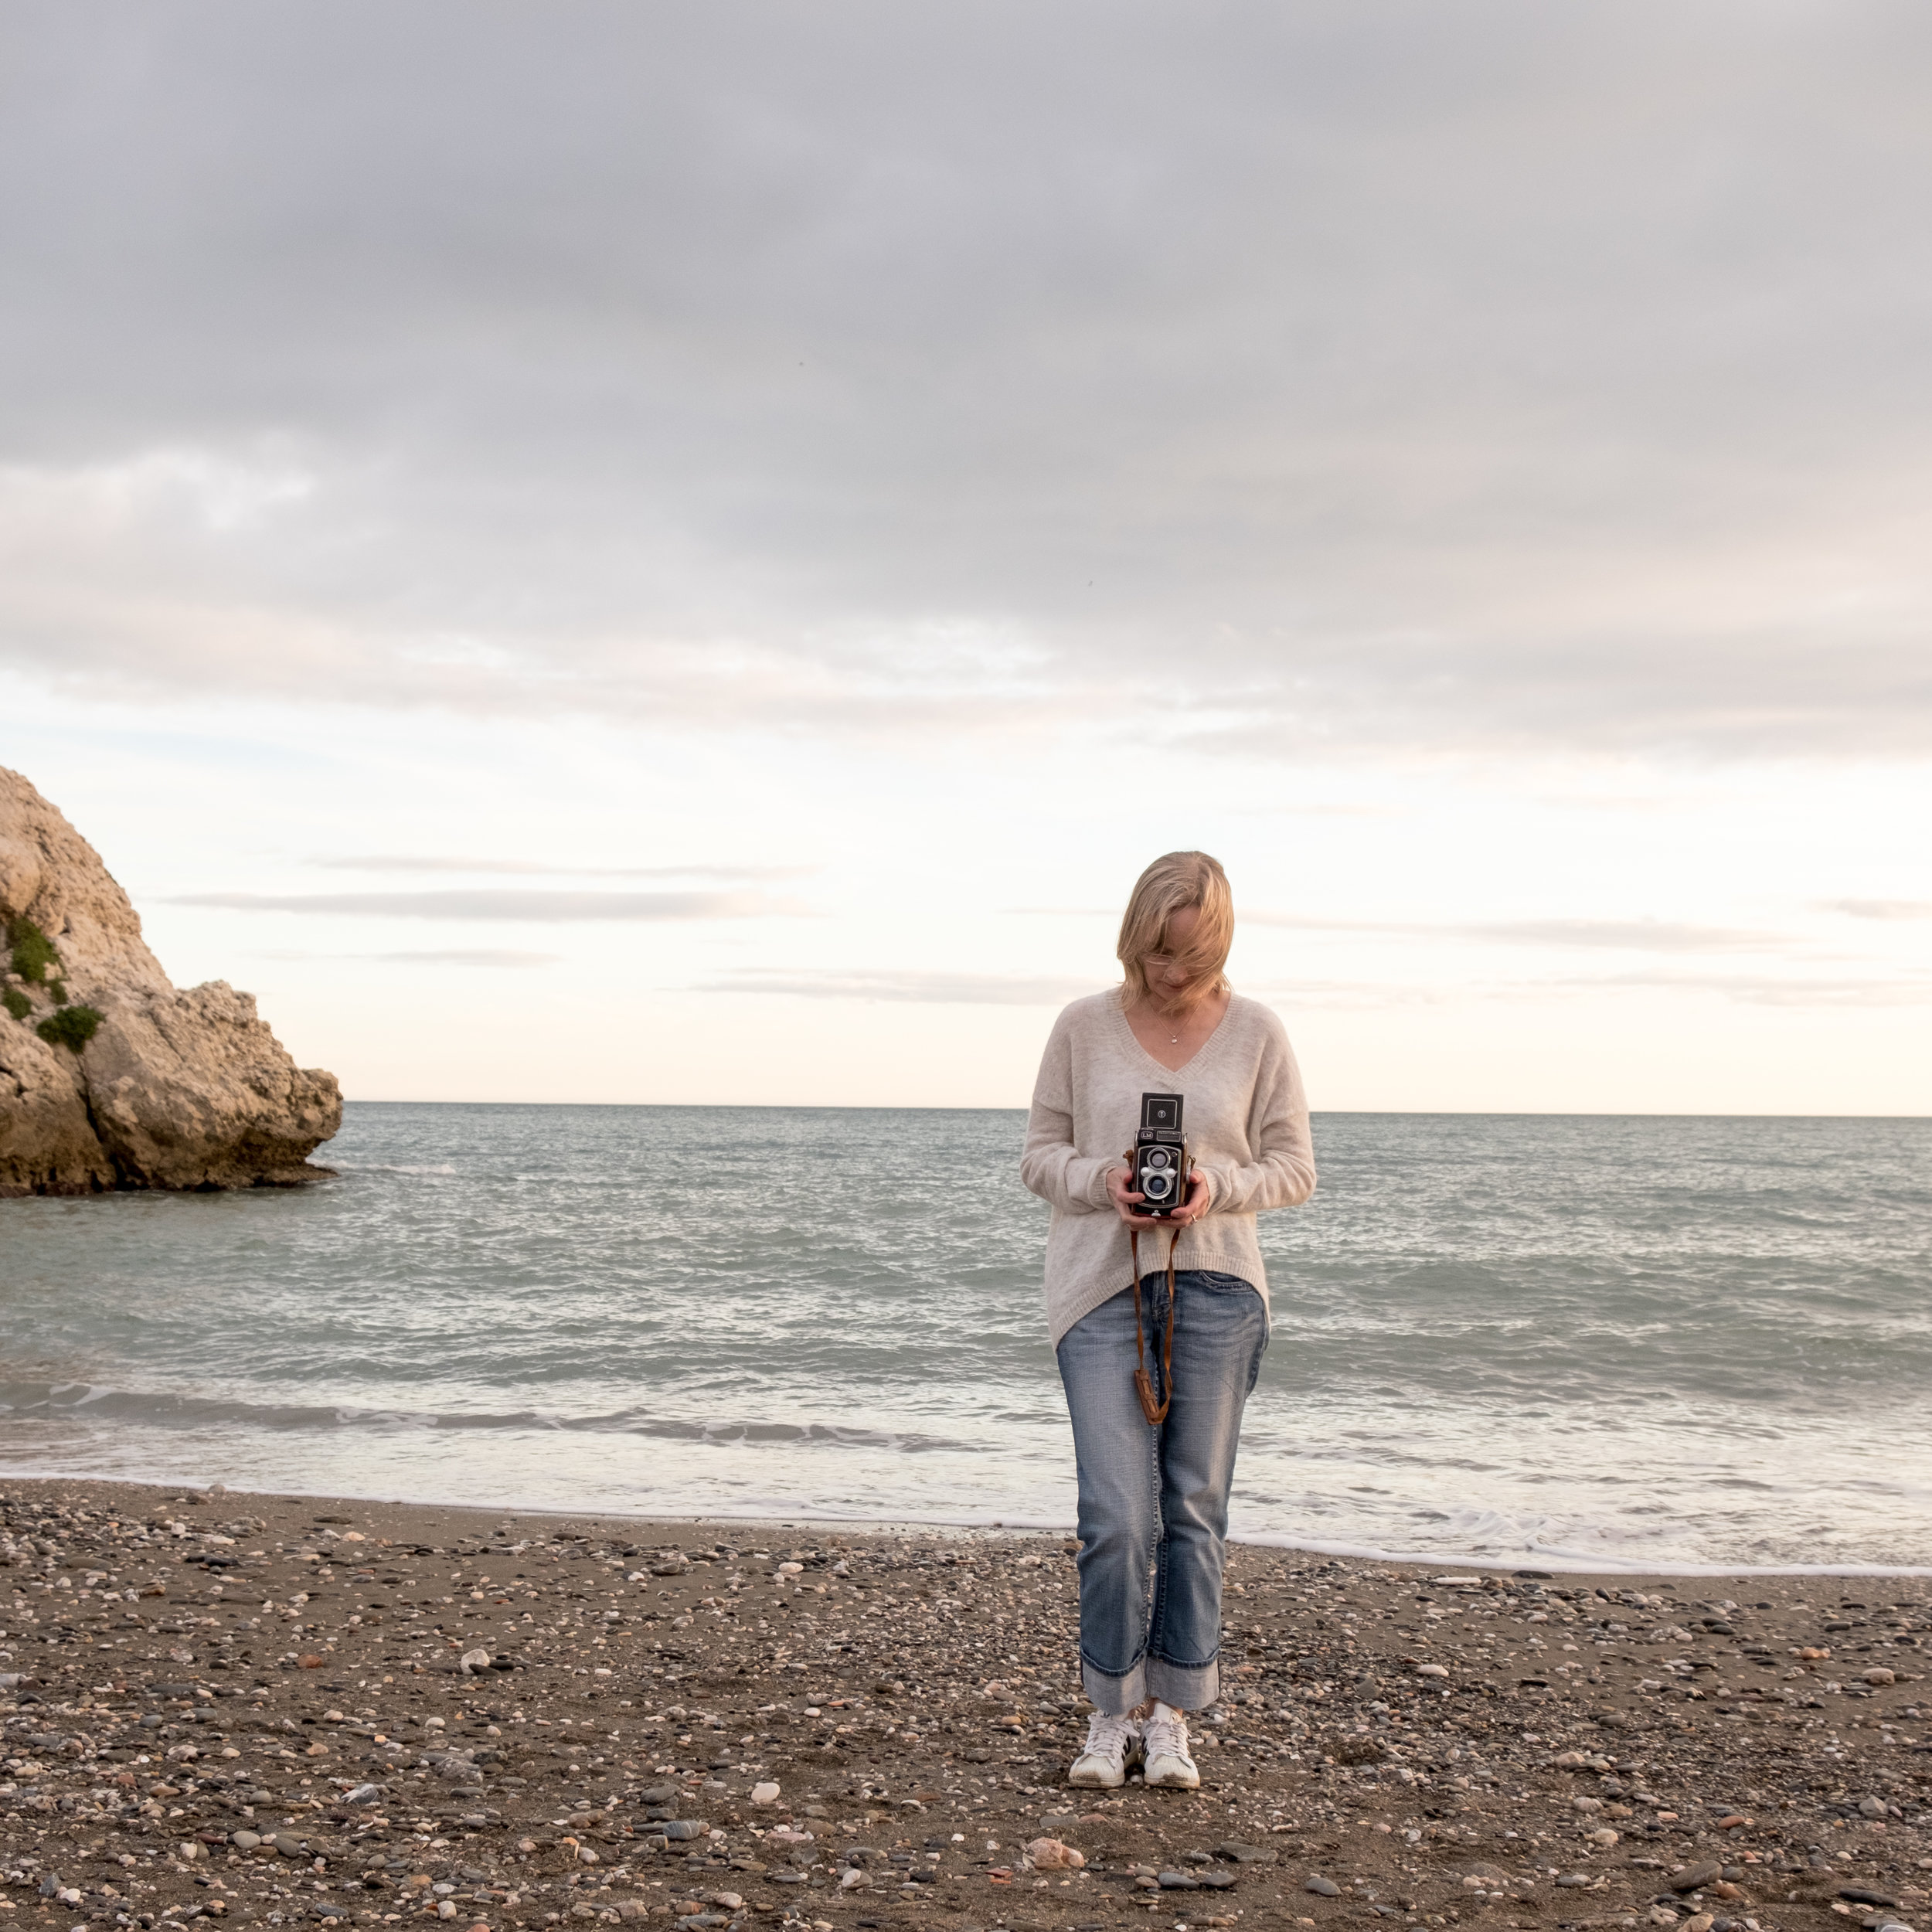 - Daughter and sister of photographer, left Finland to explore the world and finally laid down roots in Malaga. Love to collect moments through travelling and photography.